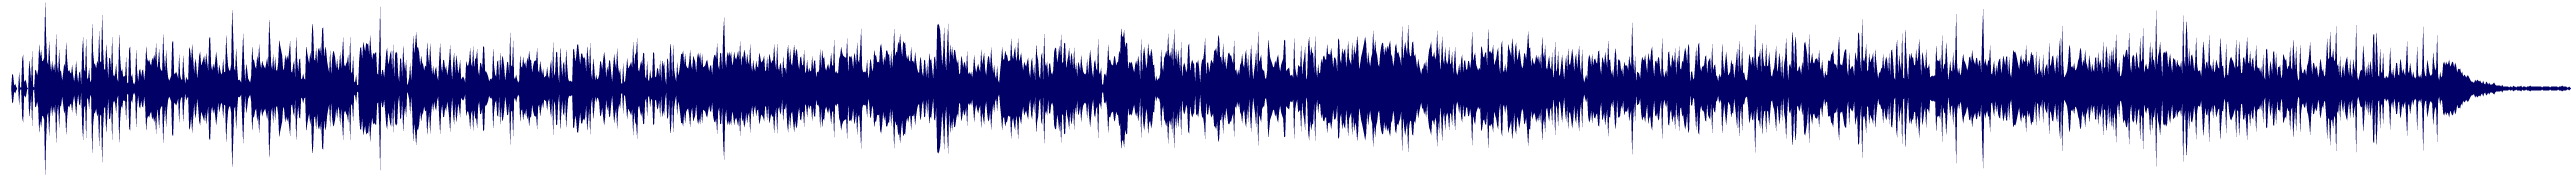 waveform of track #70942